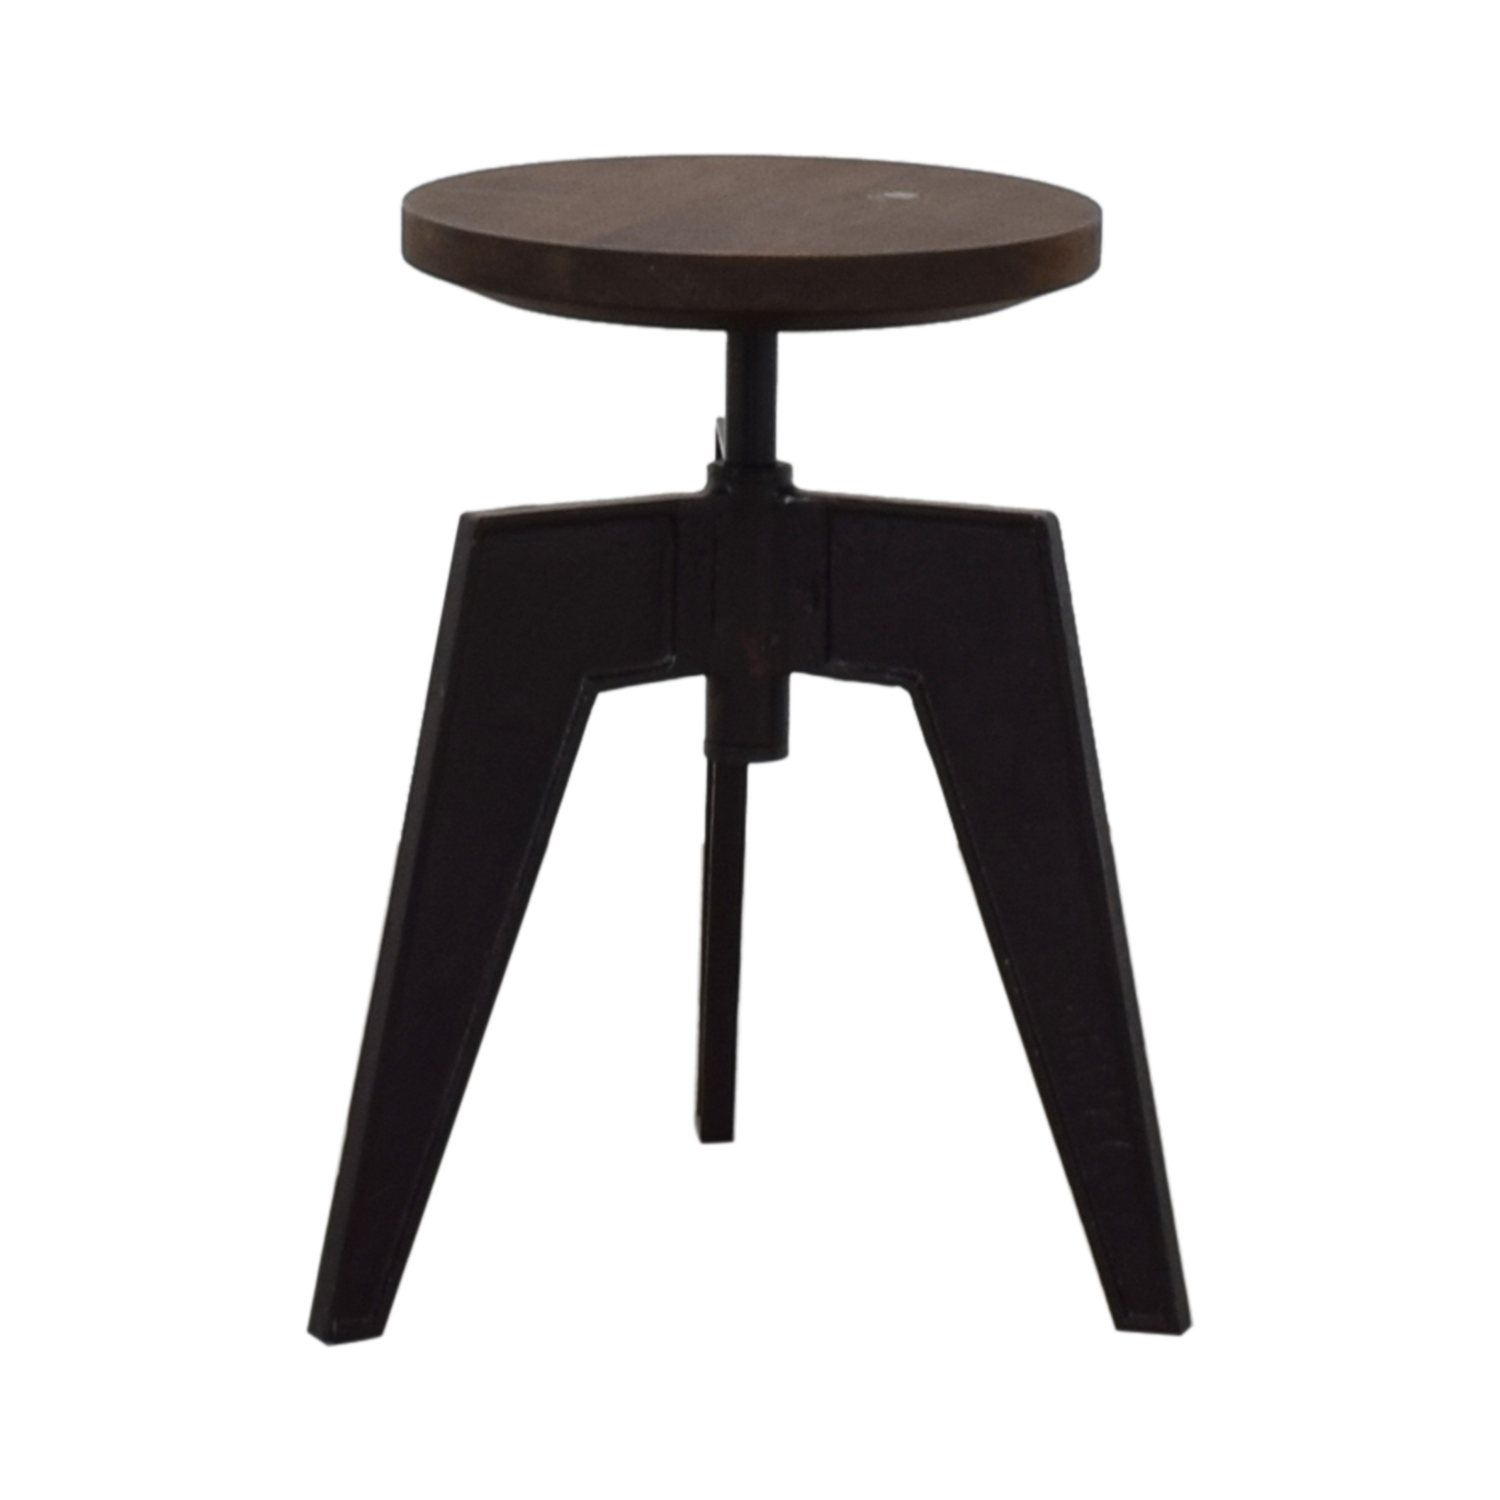 62 Off Cb2 Cb2 Contact Stool Chairs